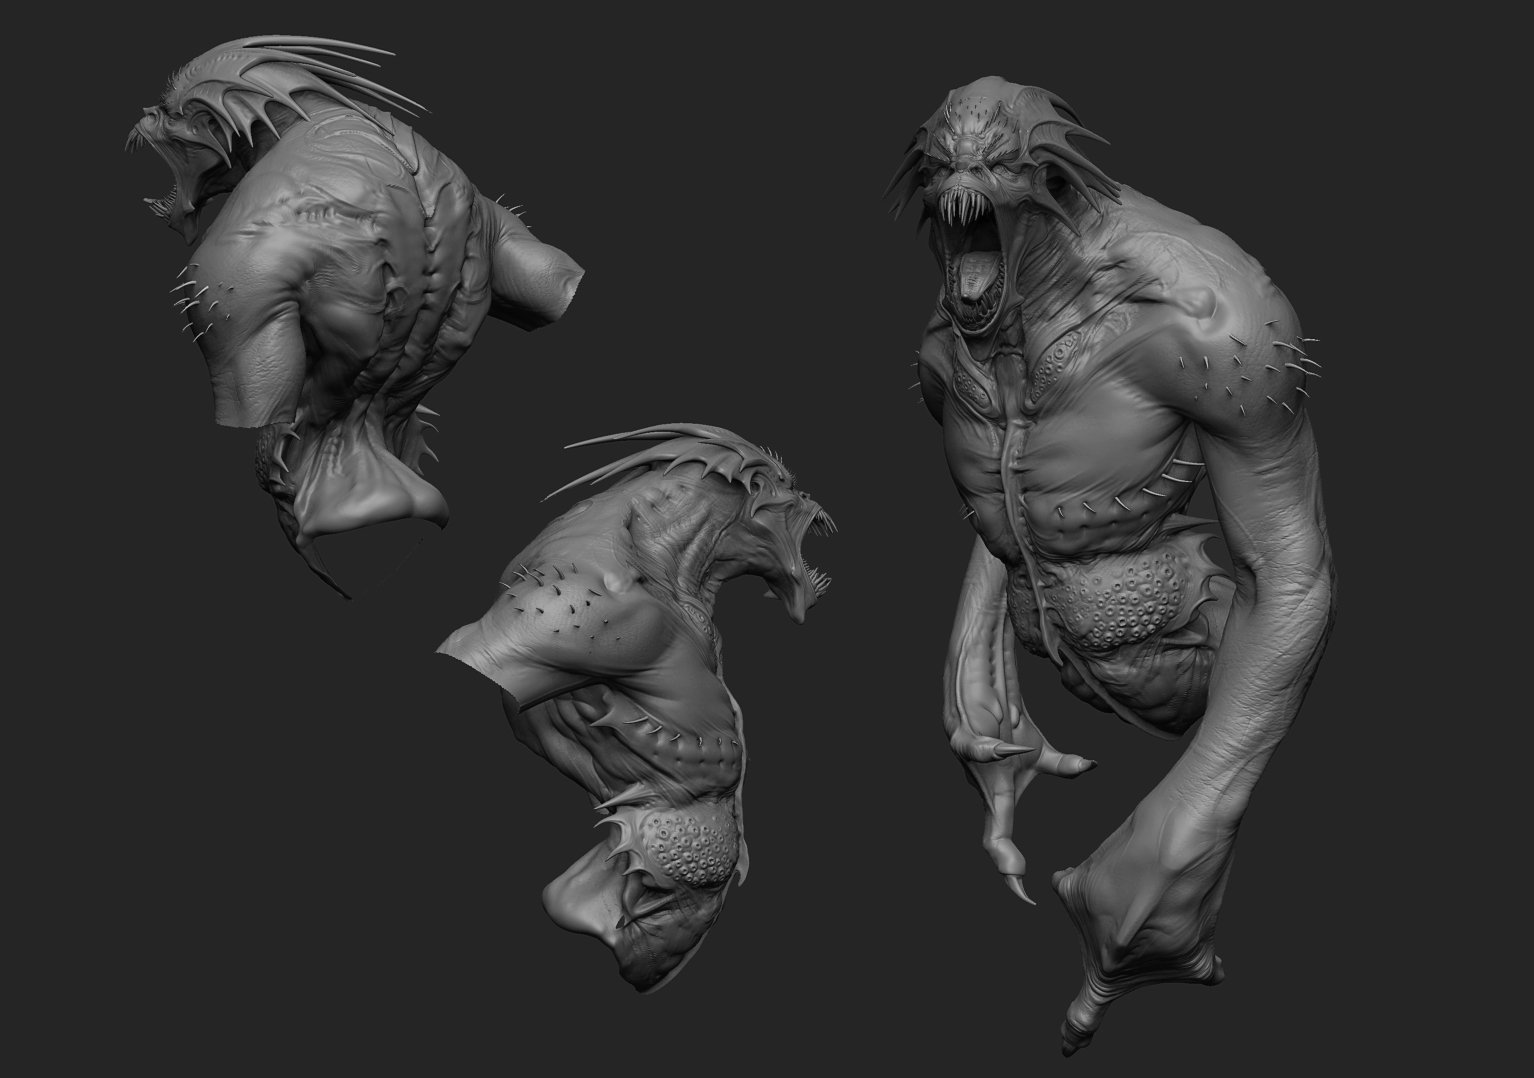 Taunt creature sculpture